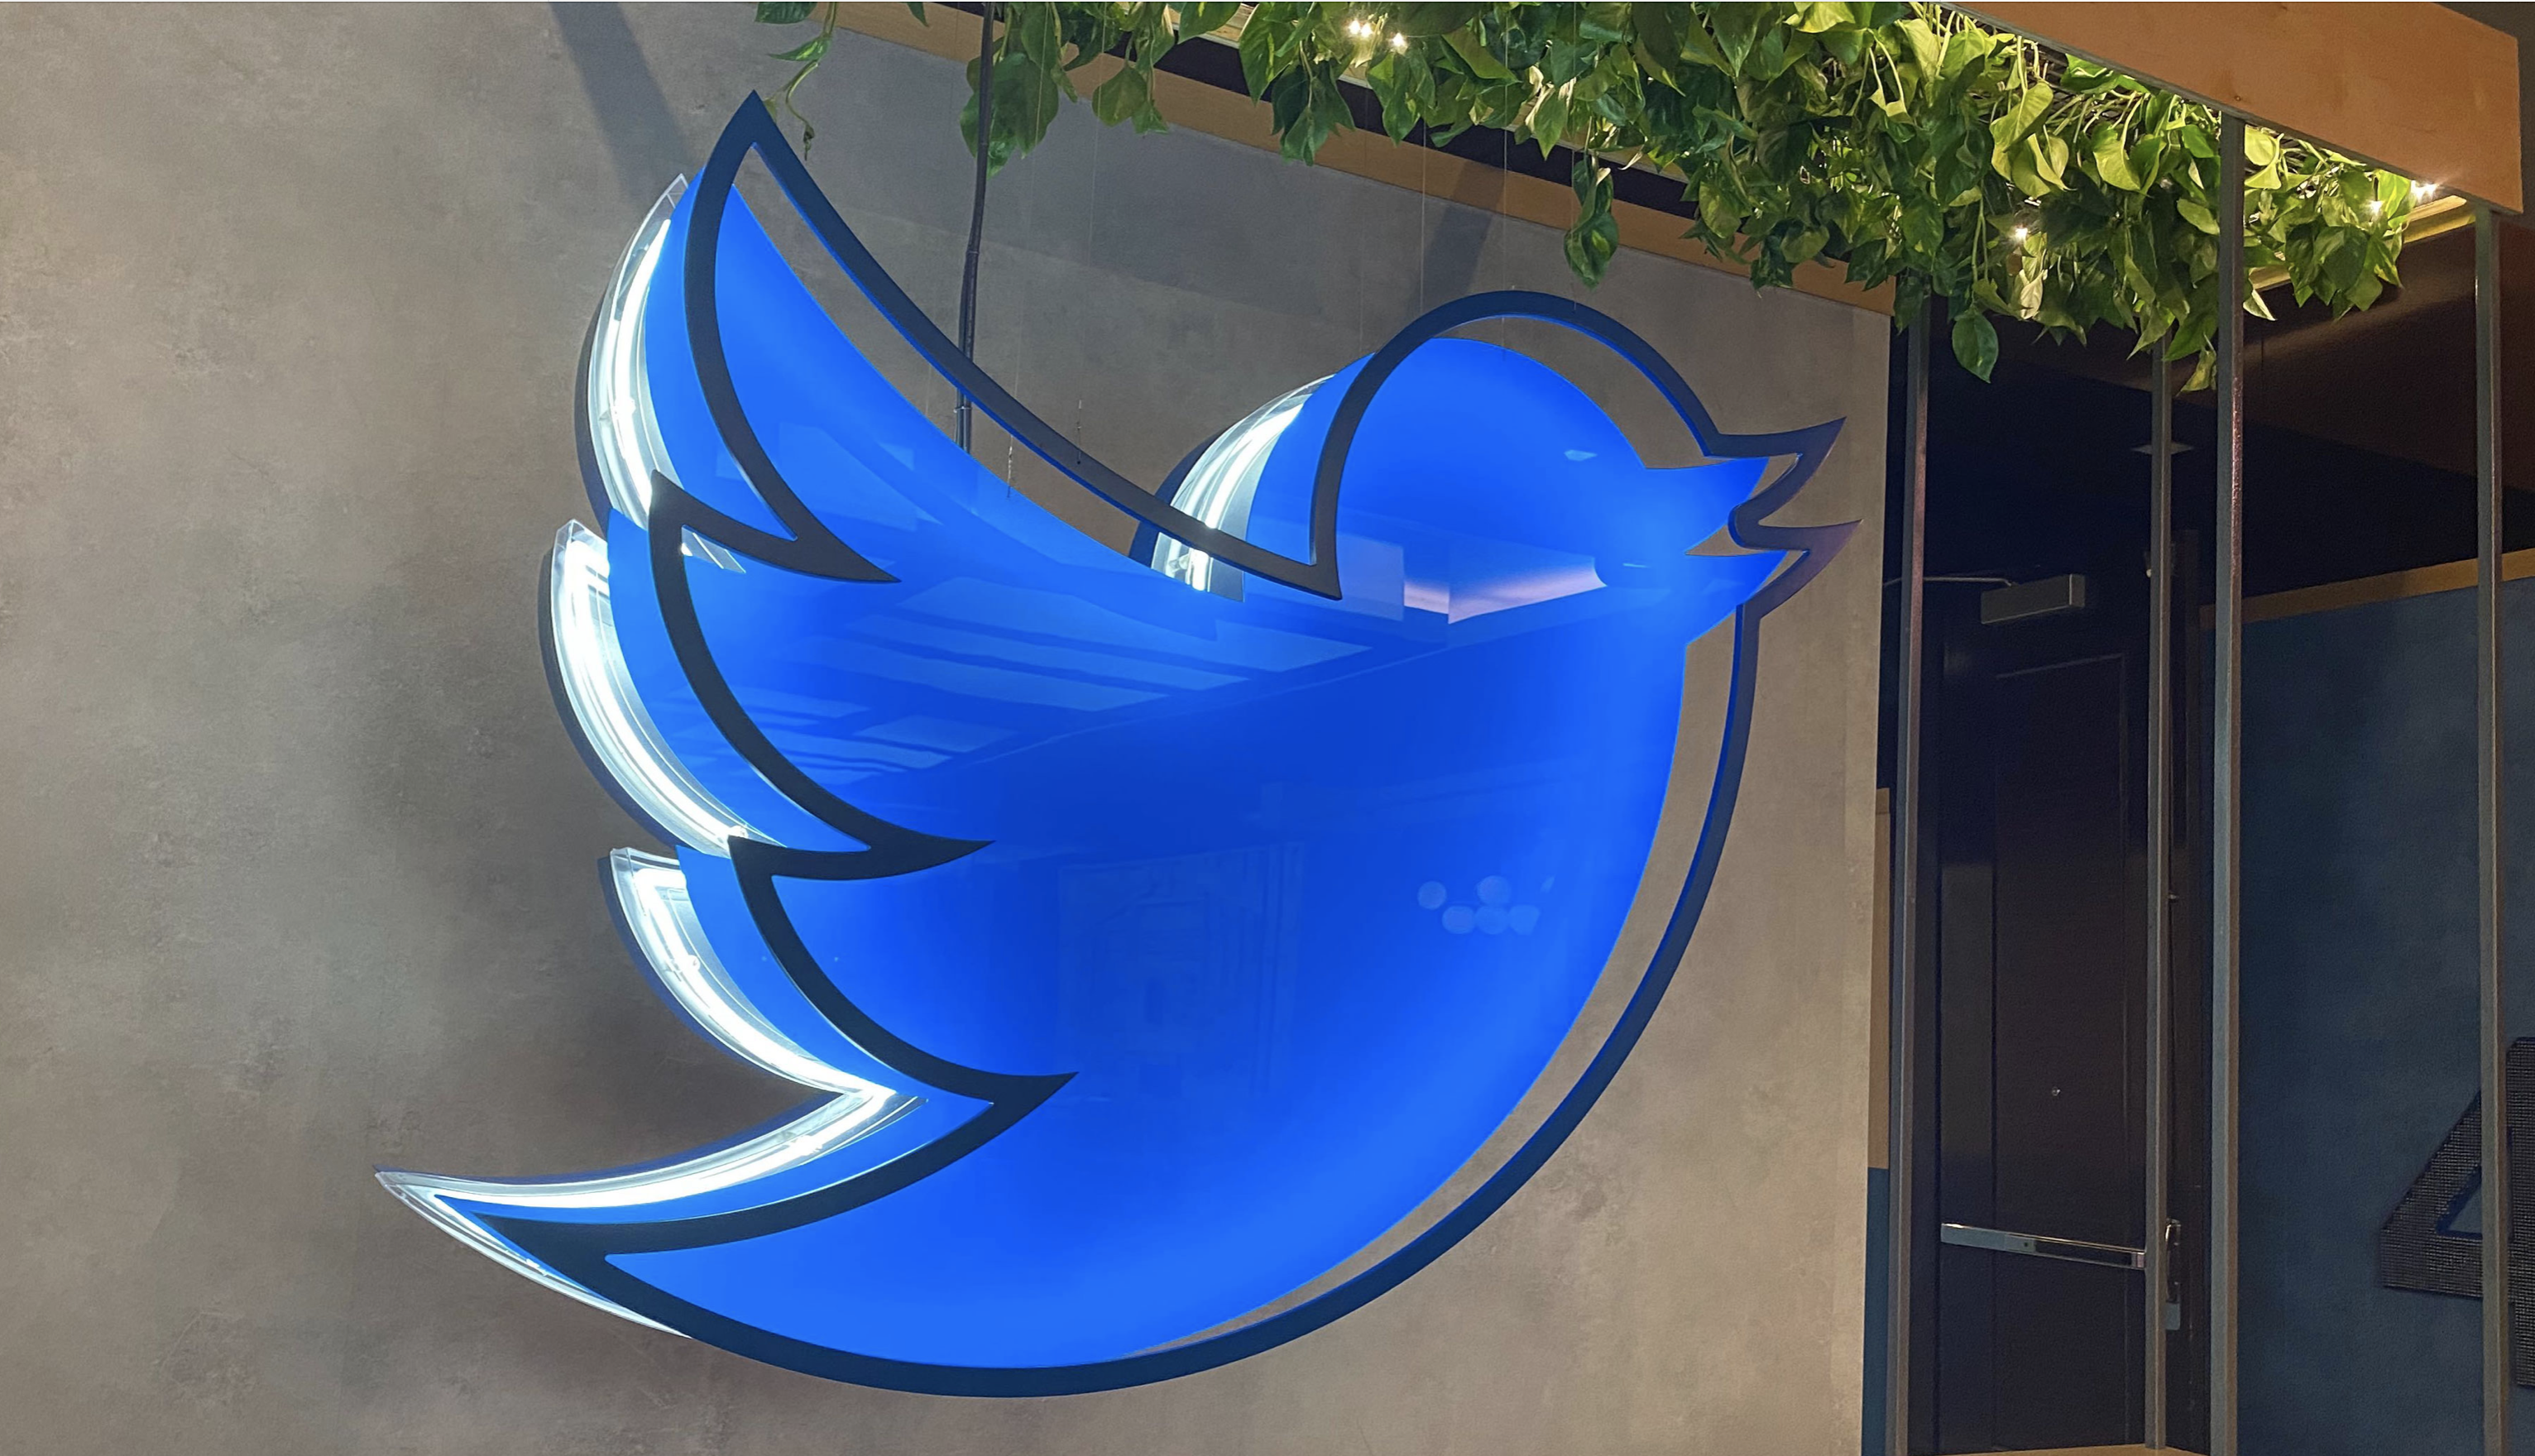 Twitter adds new sharing options to audio rooms